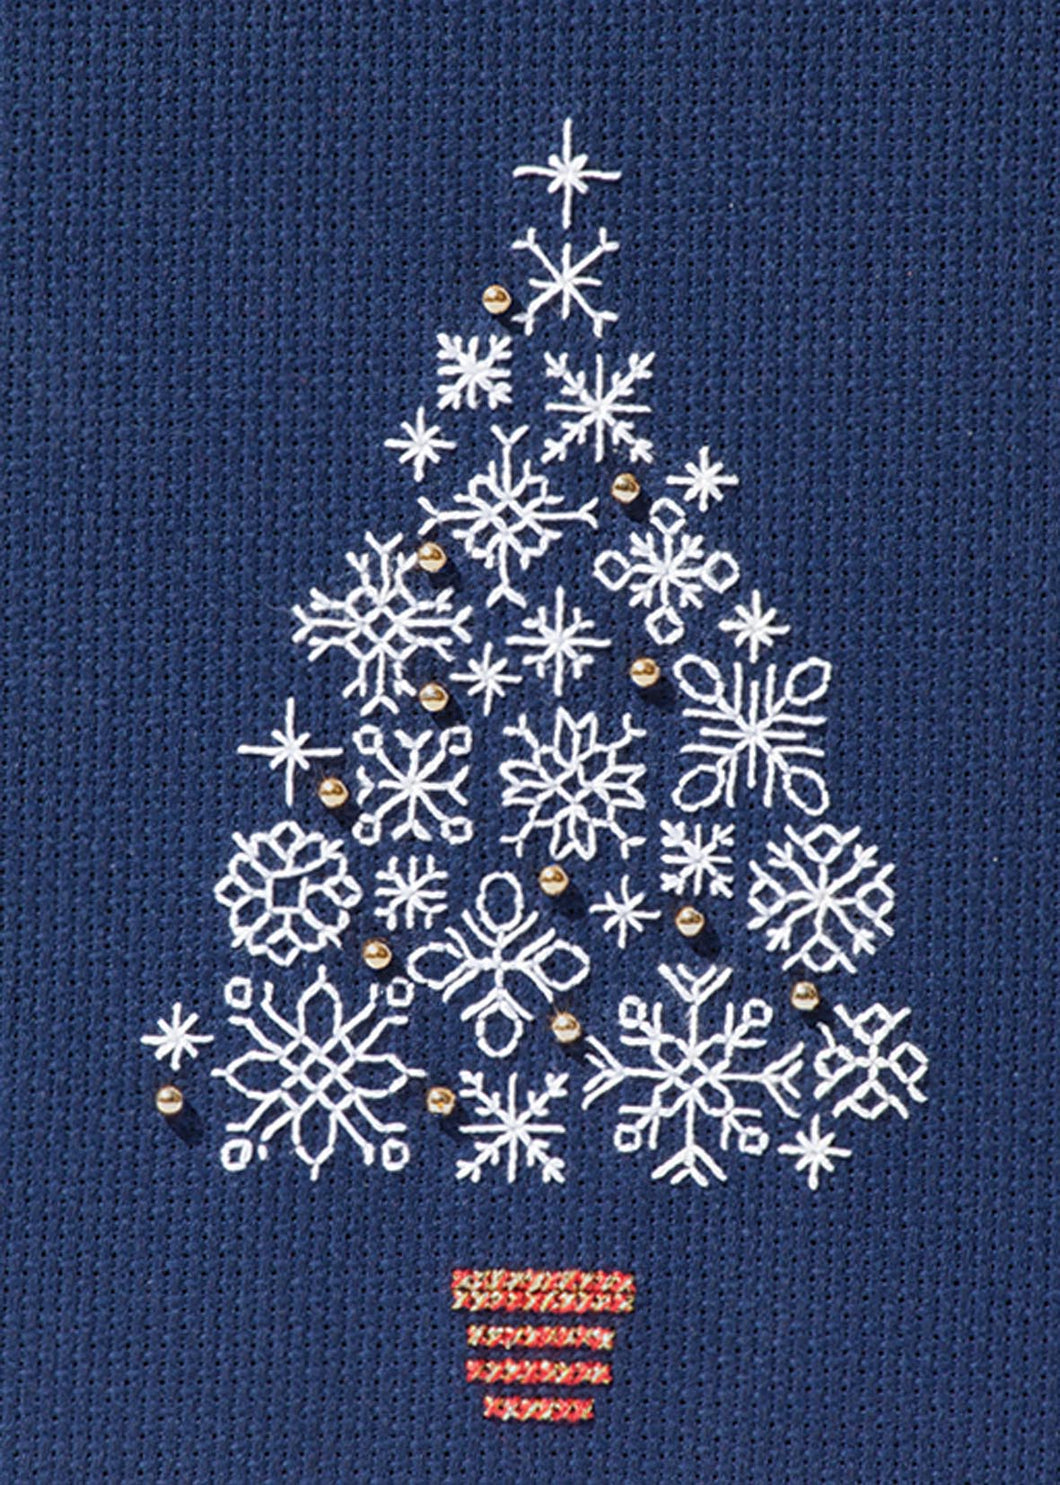 Snowflake Tree - Christmas Card Cross Stitch Kit